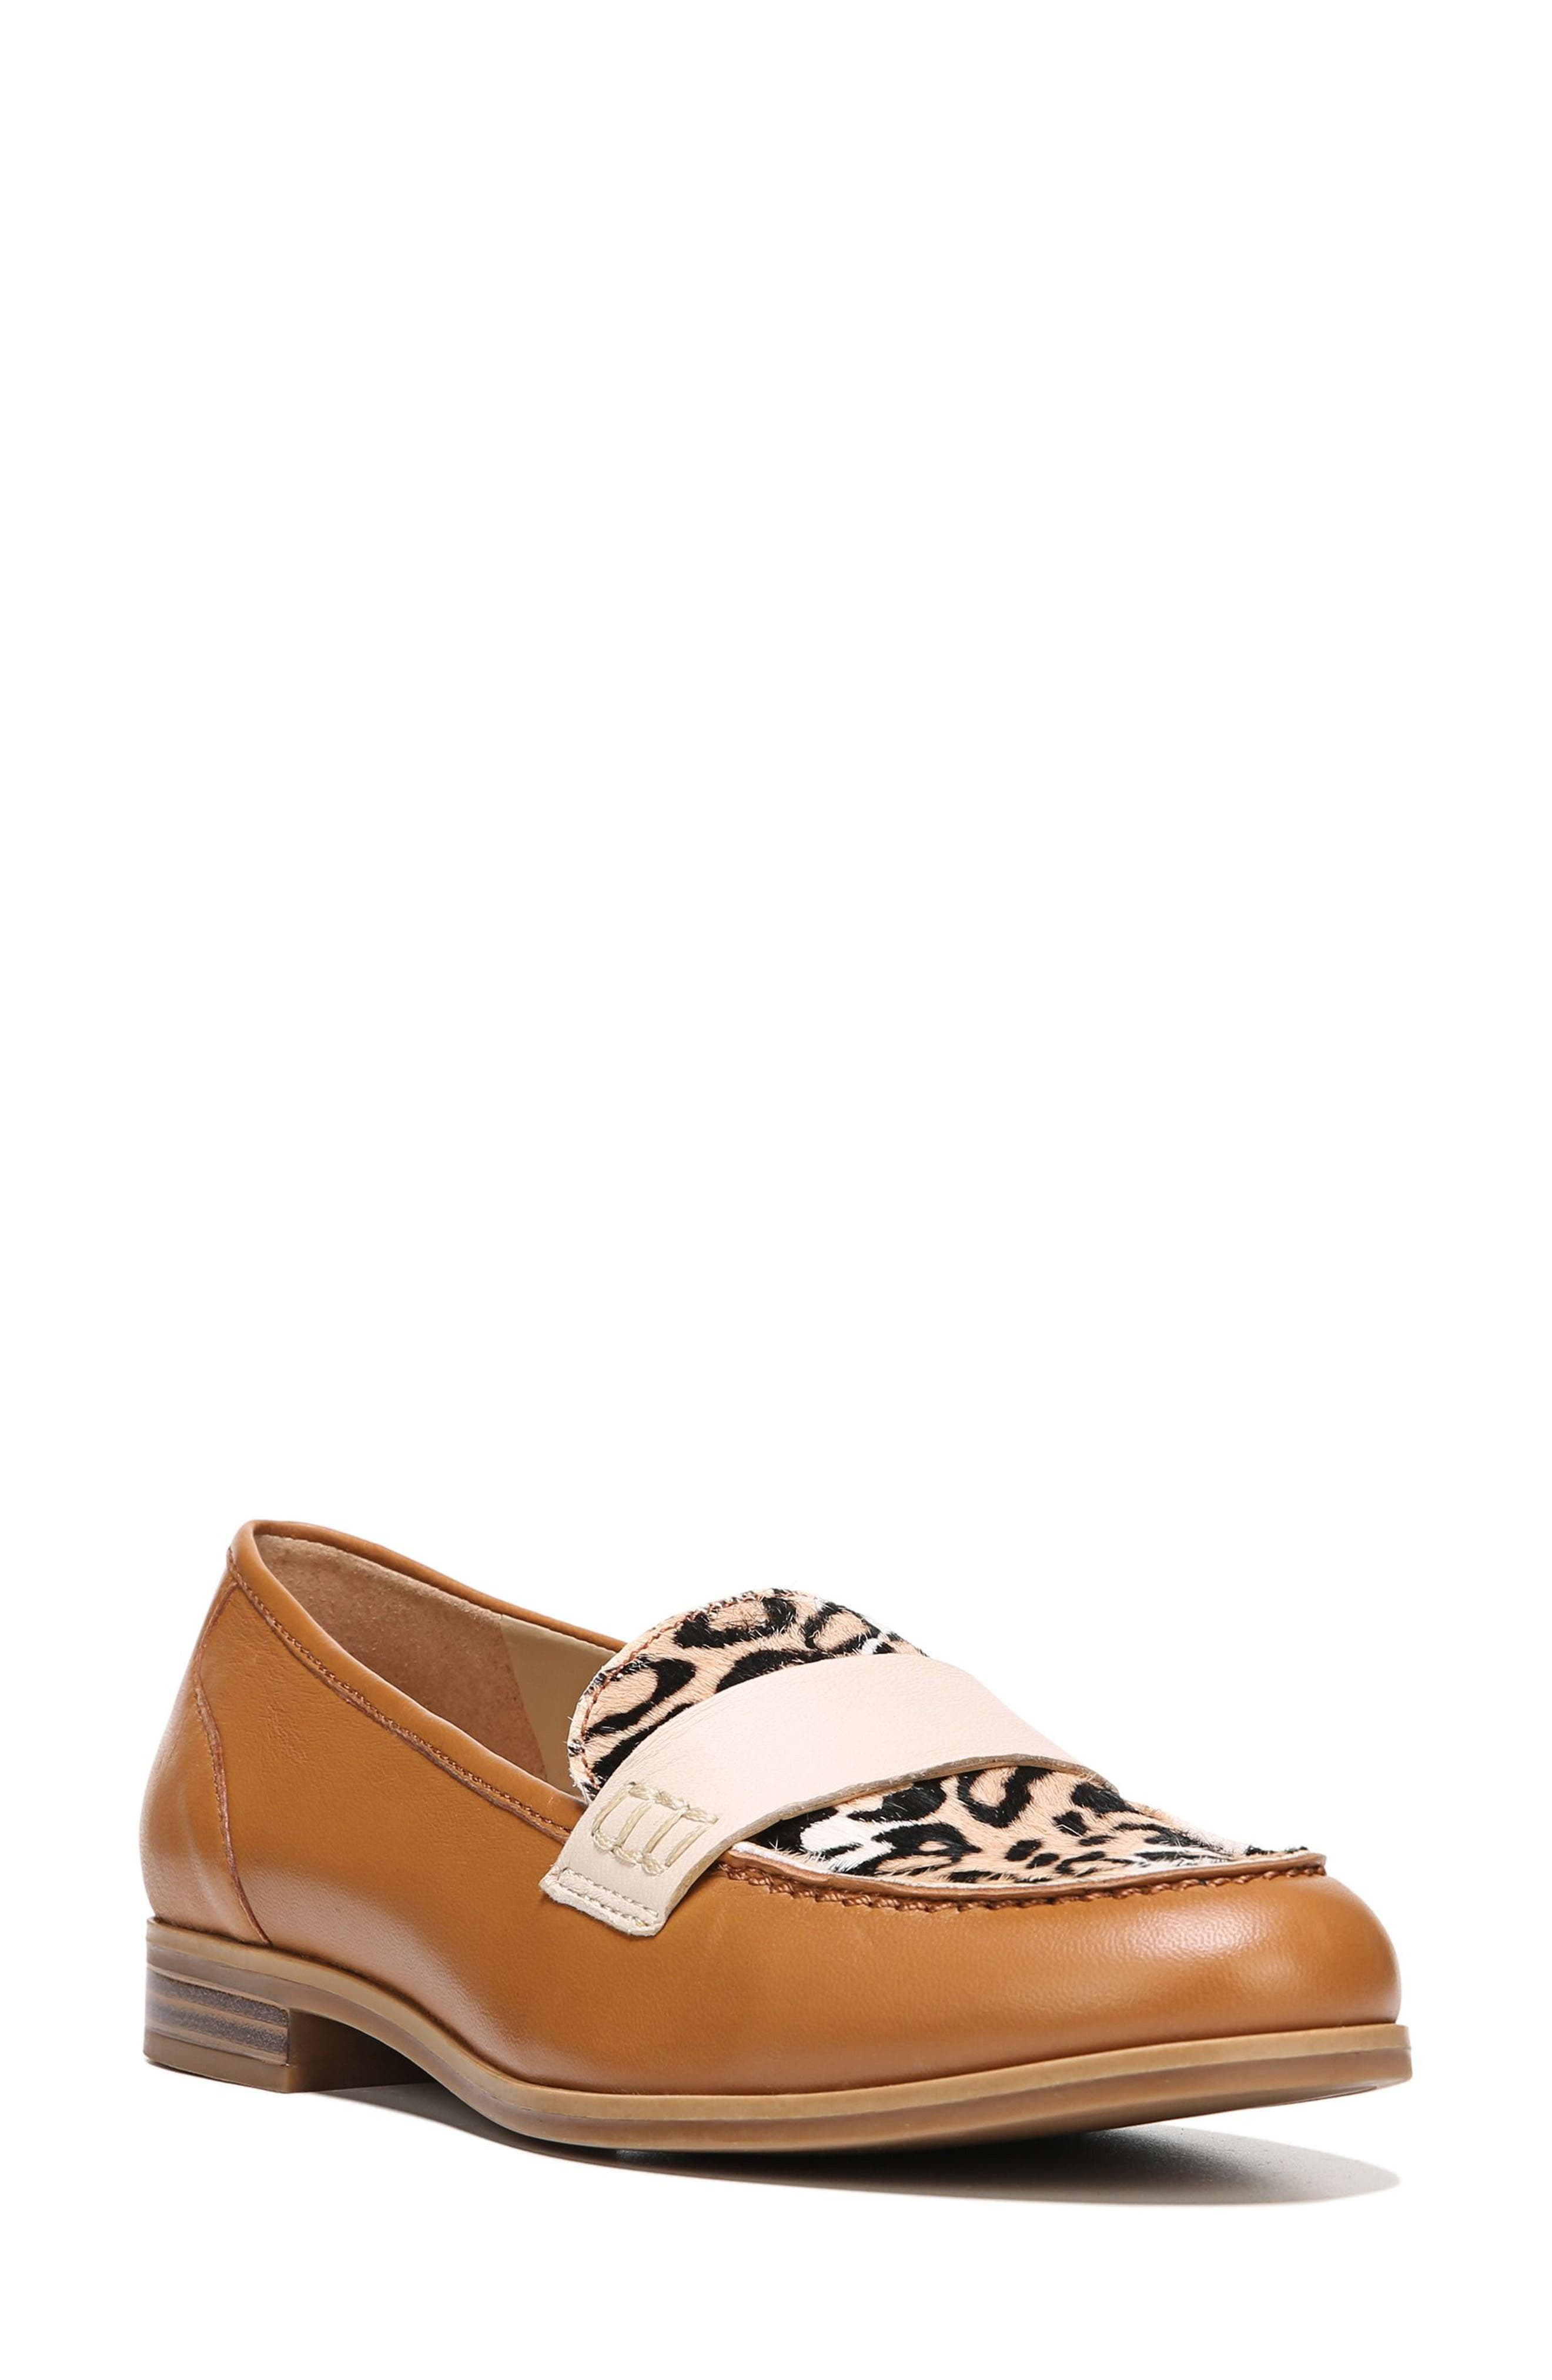 Veronica Loafer,                         Main,                         color, Cheetah Leather/ Brahma Hair